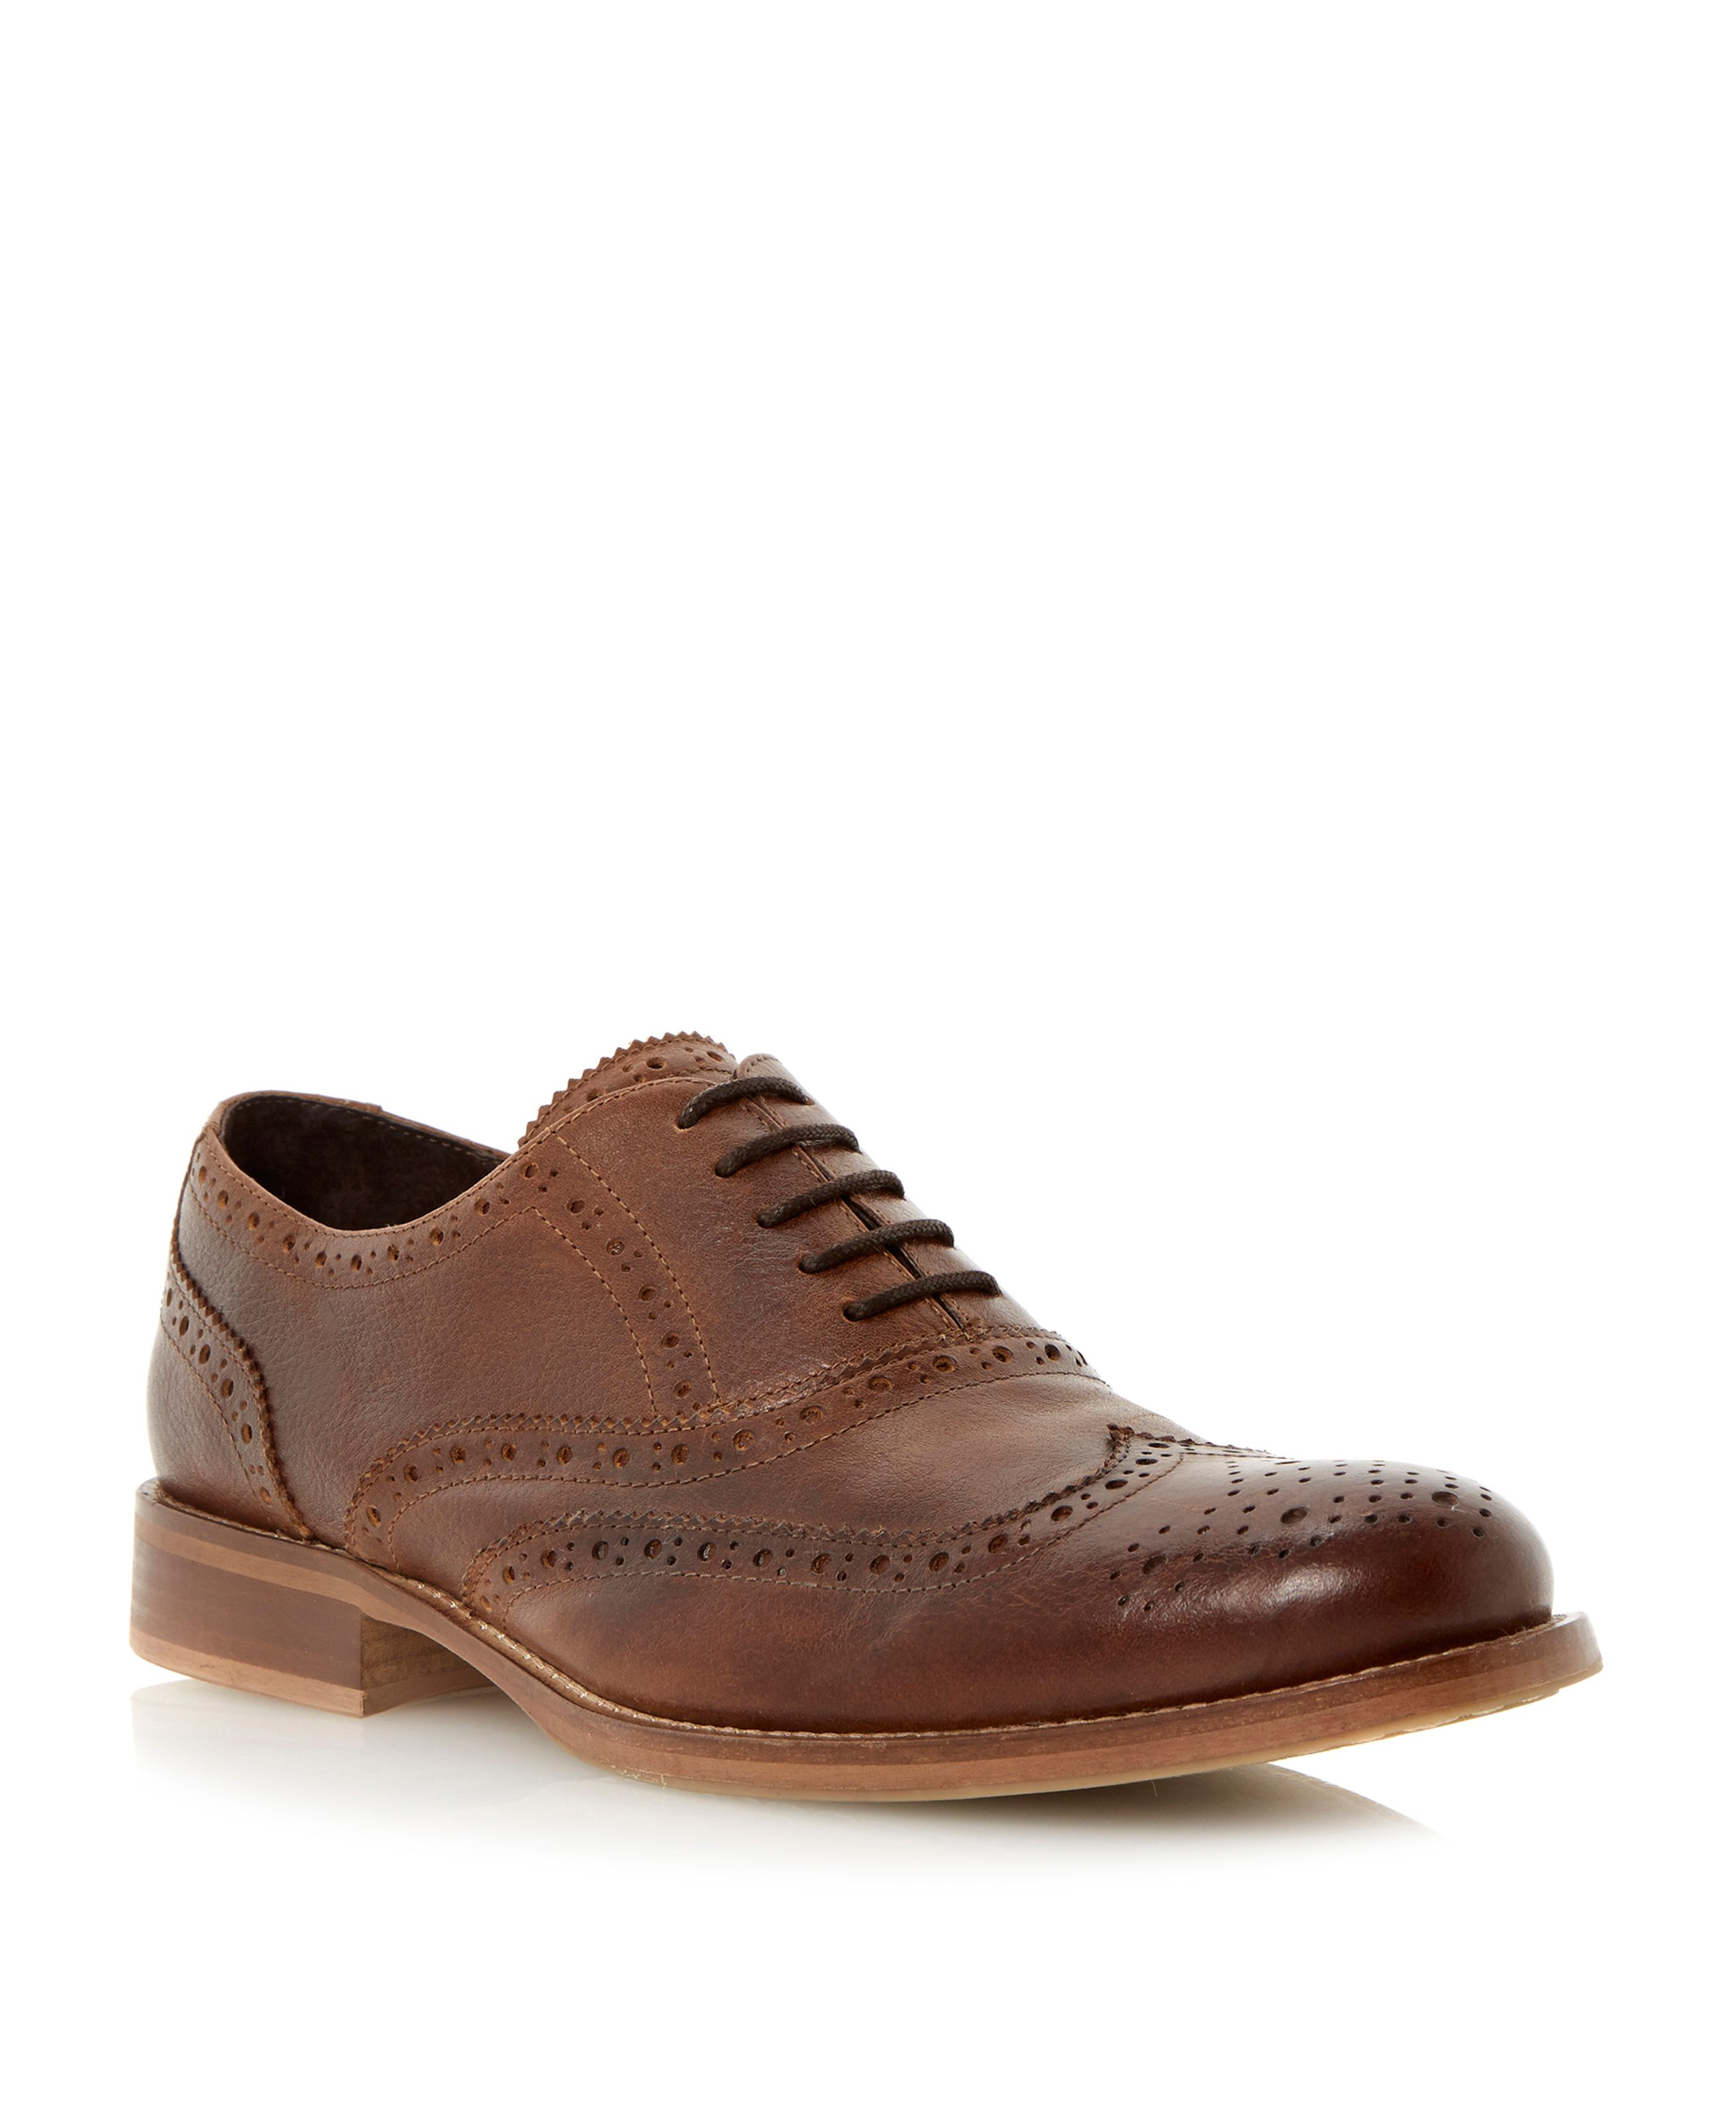 Byron leather casual lace up brogues